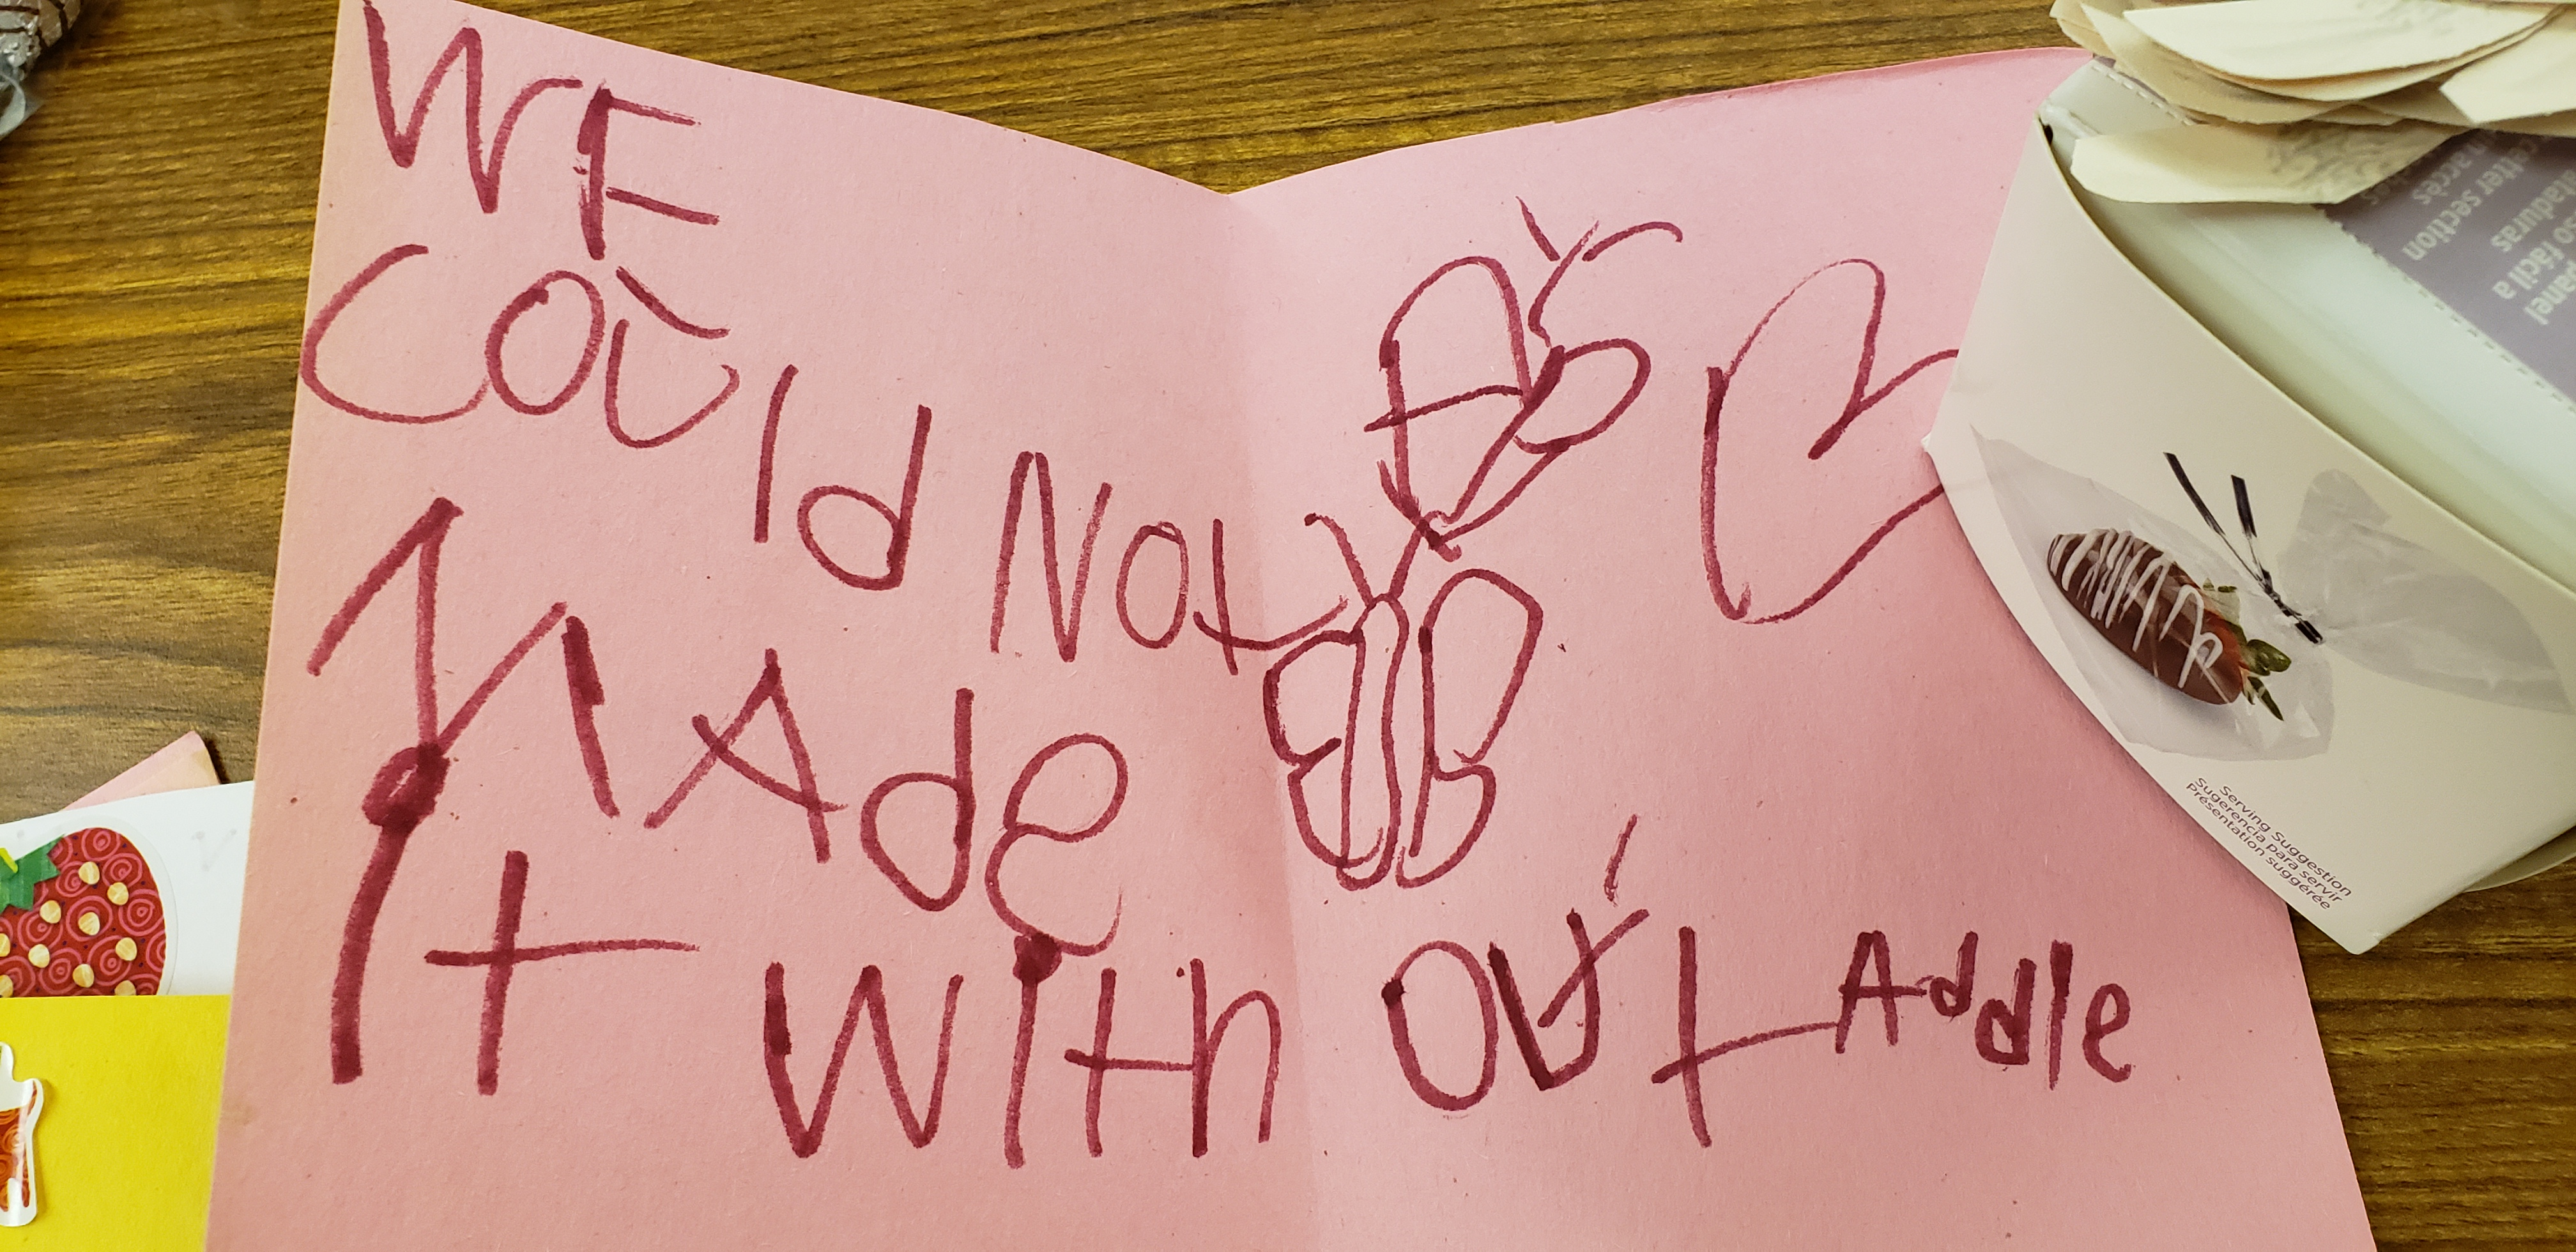 Thank you note written by a child to DSPs